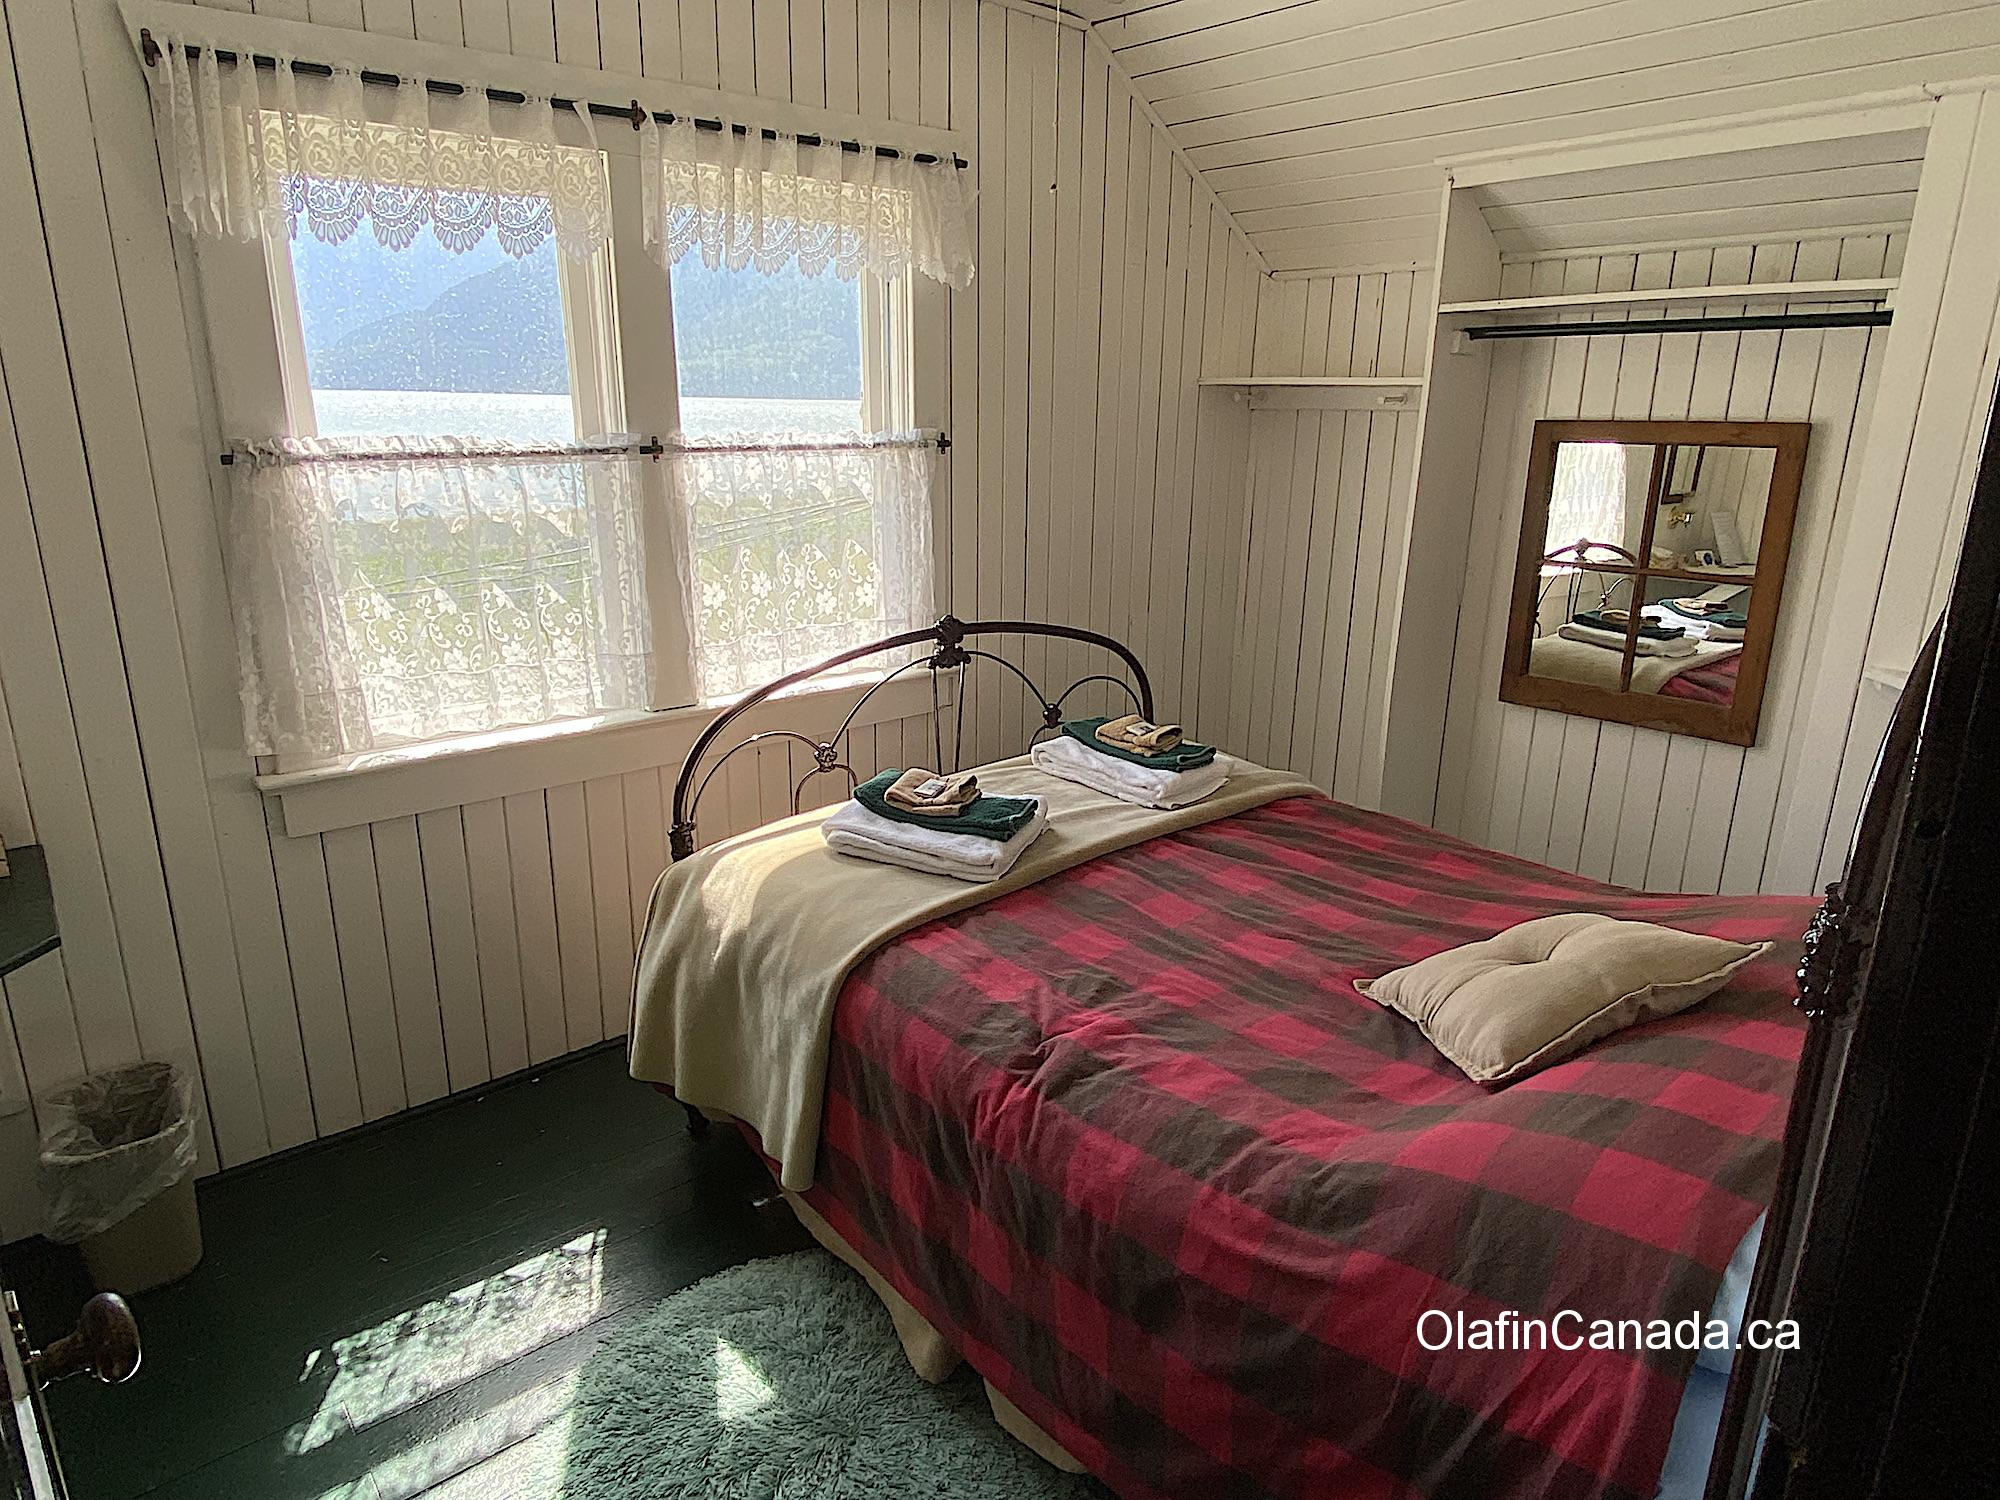 A bedroom in the guesthouse of the Tallheo Cannery in Bella Coola Items in the shop at the Tallheo Cannery in Bella Coola #olafincanada #britishcolumbia #discoverbc #abandonedbc #tallheocannery #bellacoola